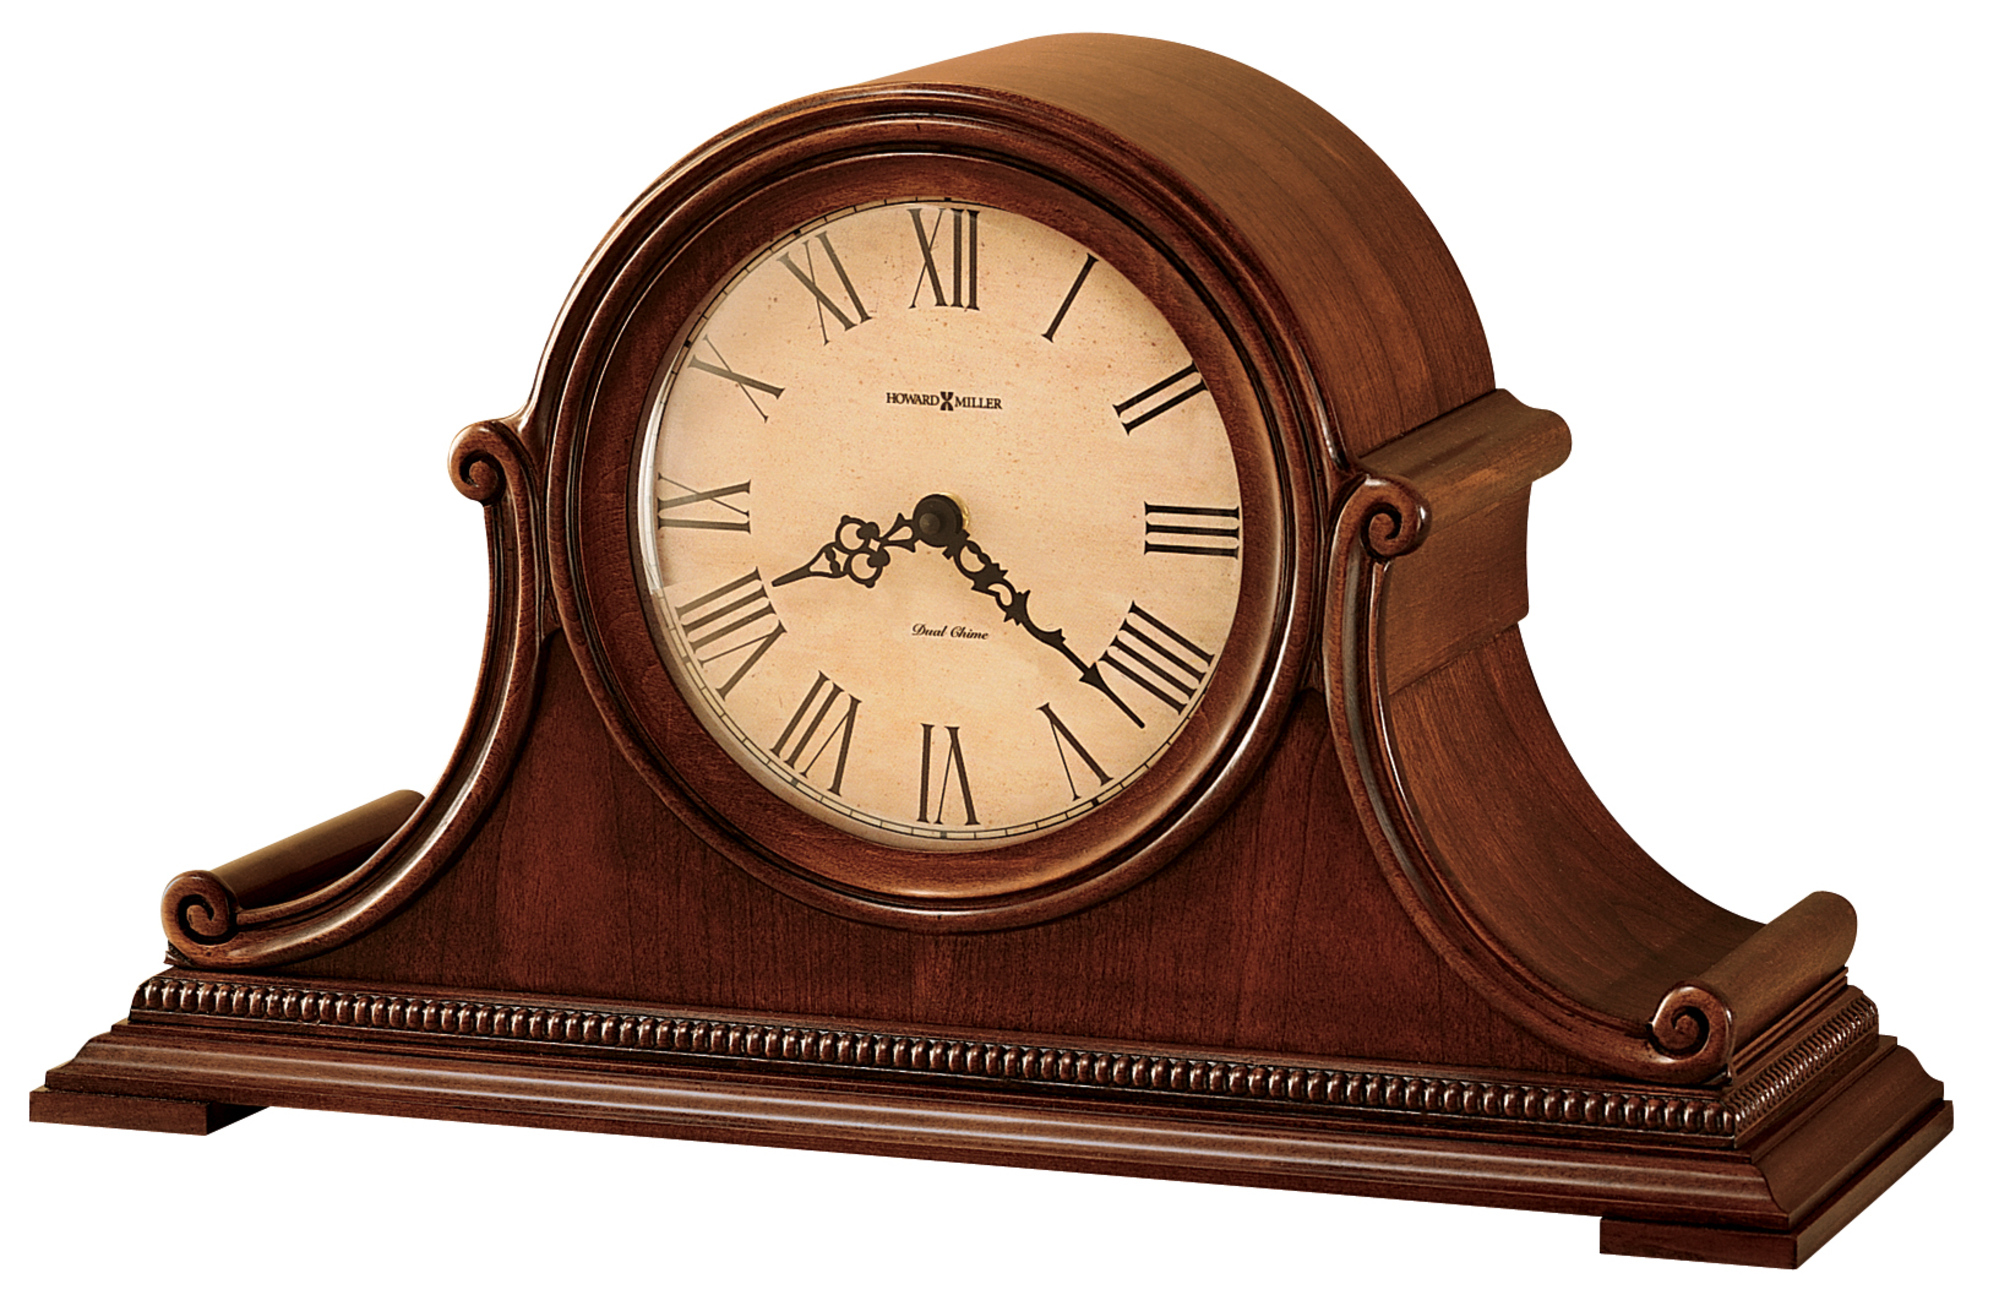 Howard Miller Hampton Mantel Clock 630 150 630150 30 Off : eBay